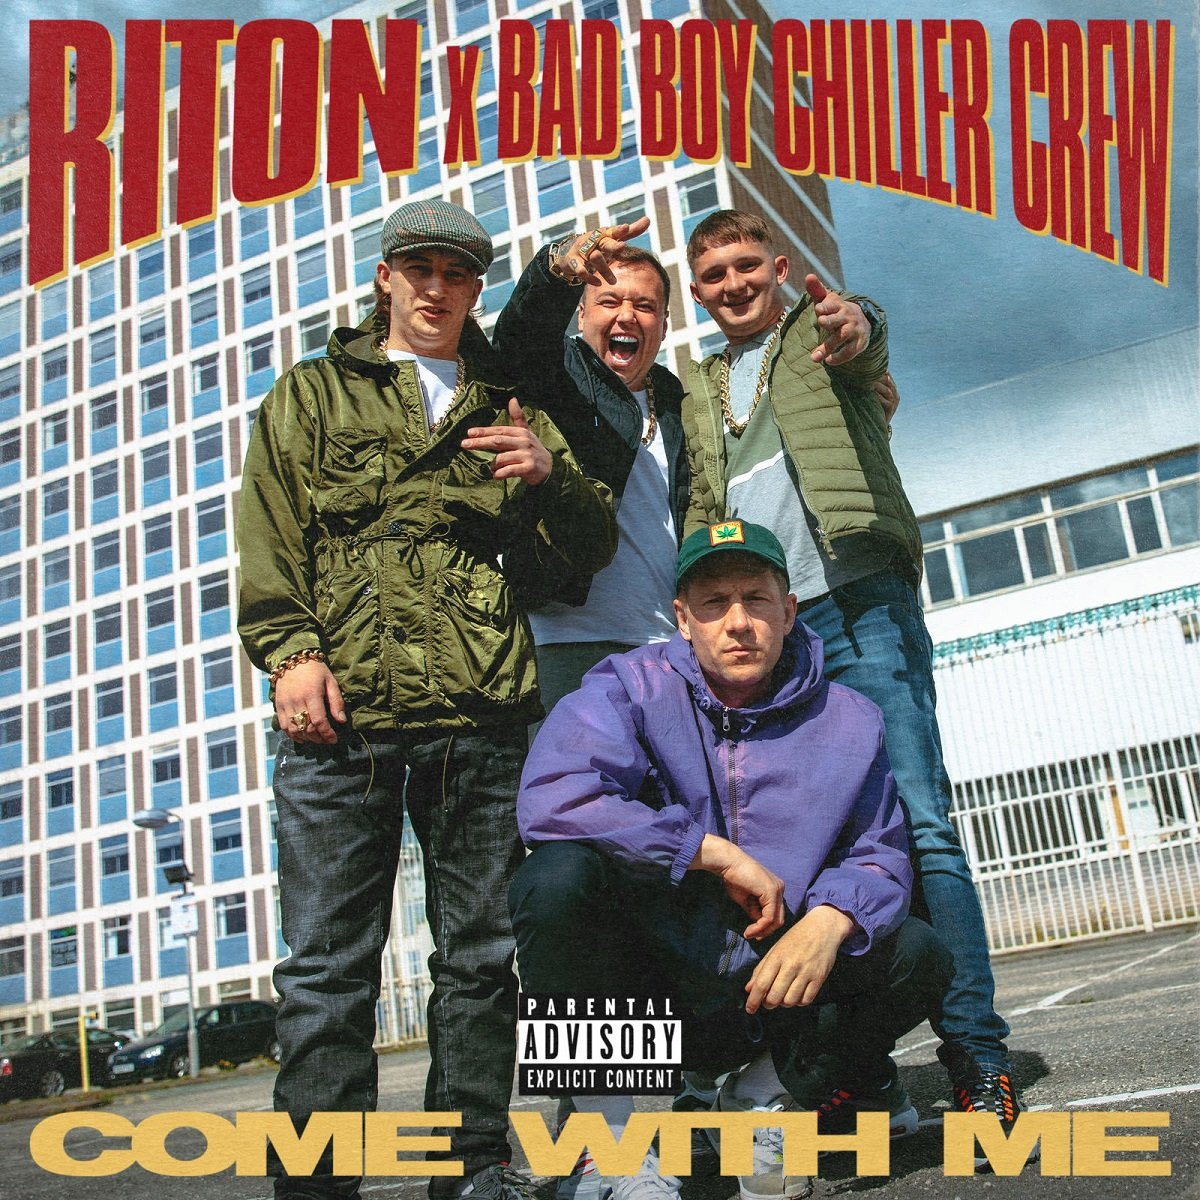 Riton x Bad Boy Chiller Crew COME WITH ME